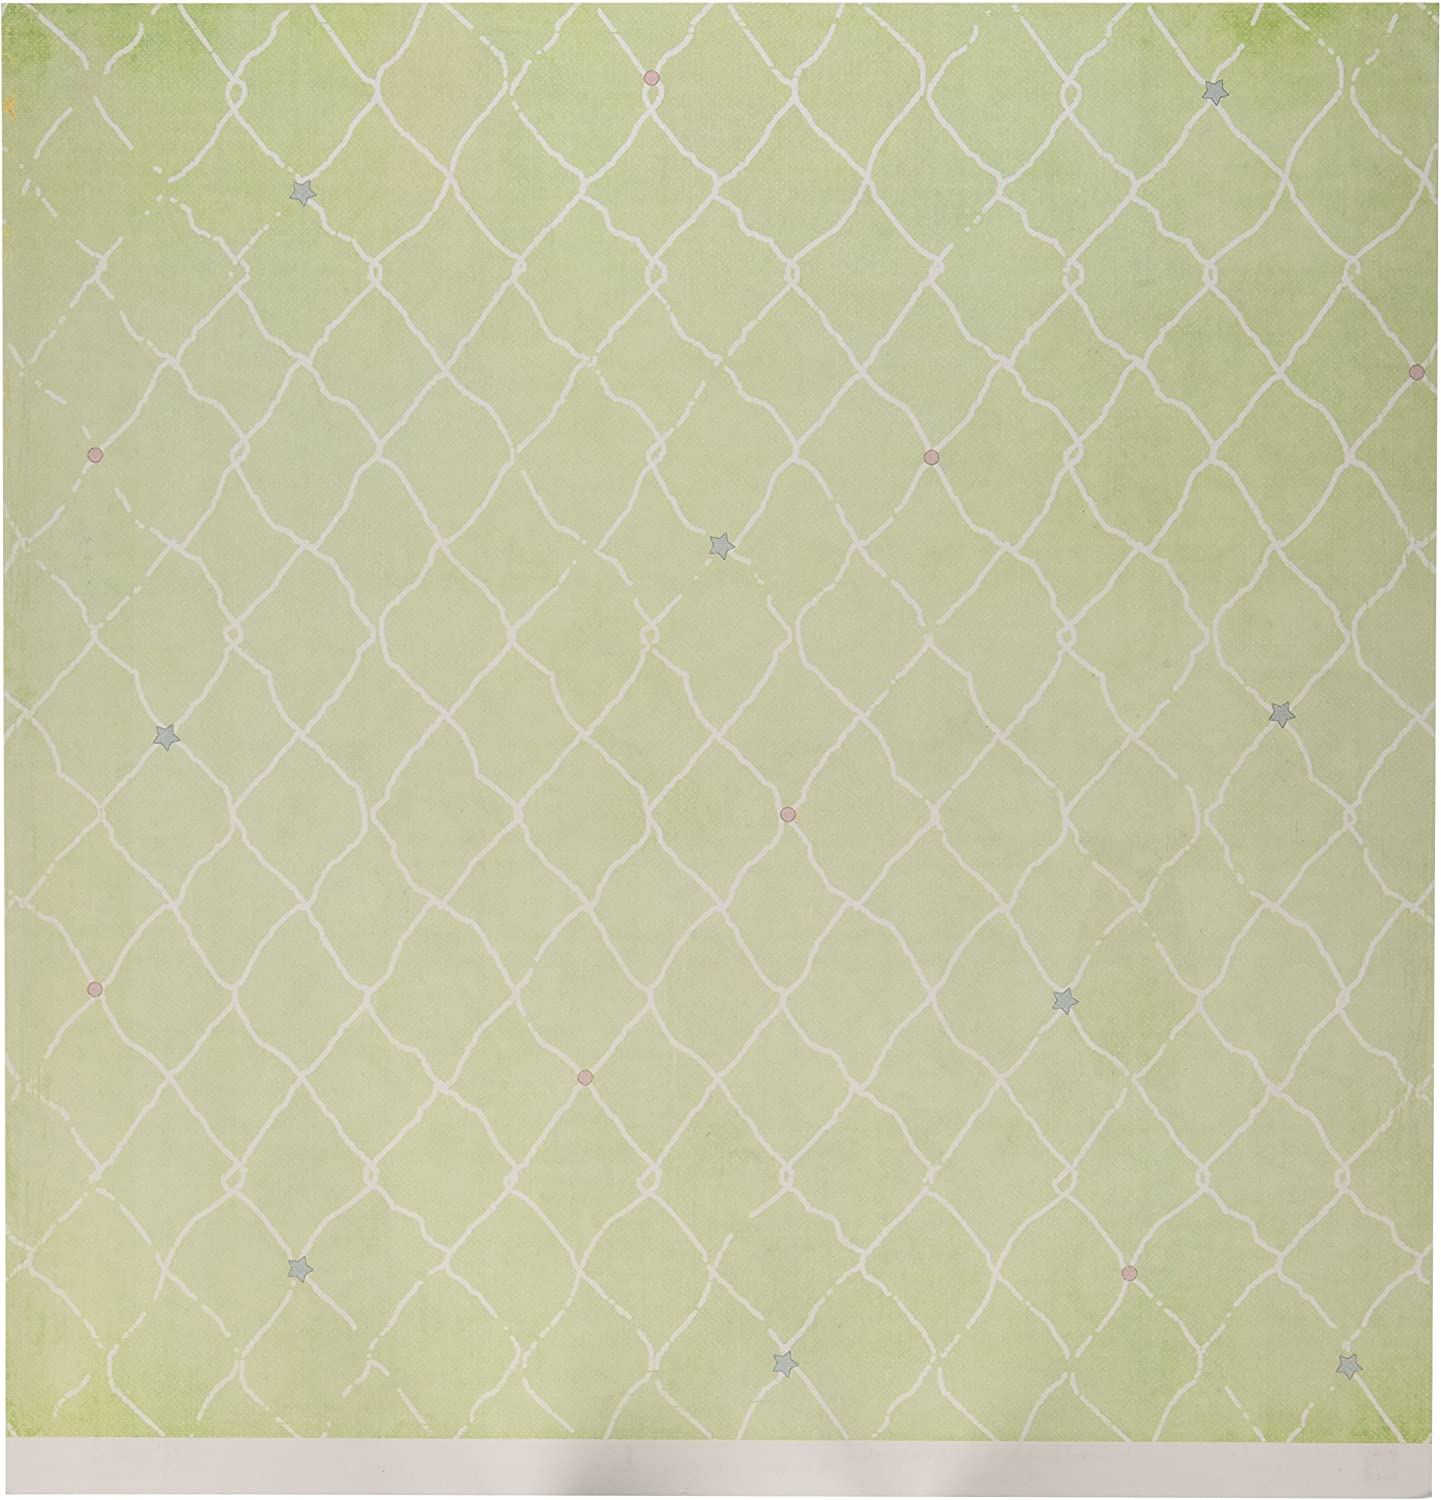 Prima Limited price sale 842857 12 by 12-Inch Celebrate Cardstock Jack and Sales results No. 1 Paper J